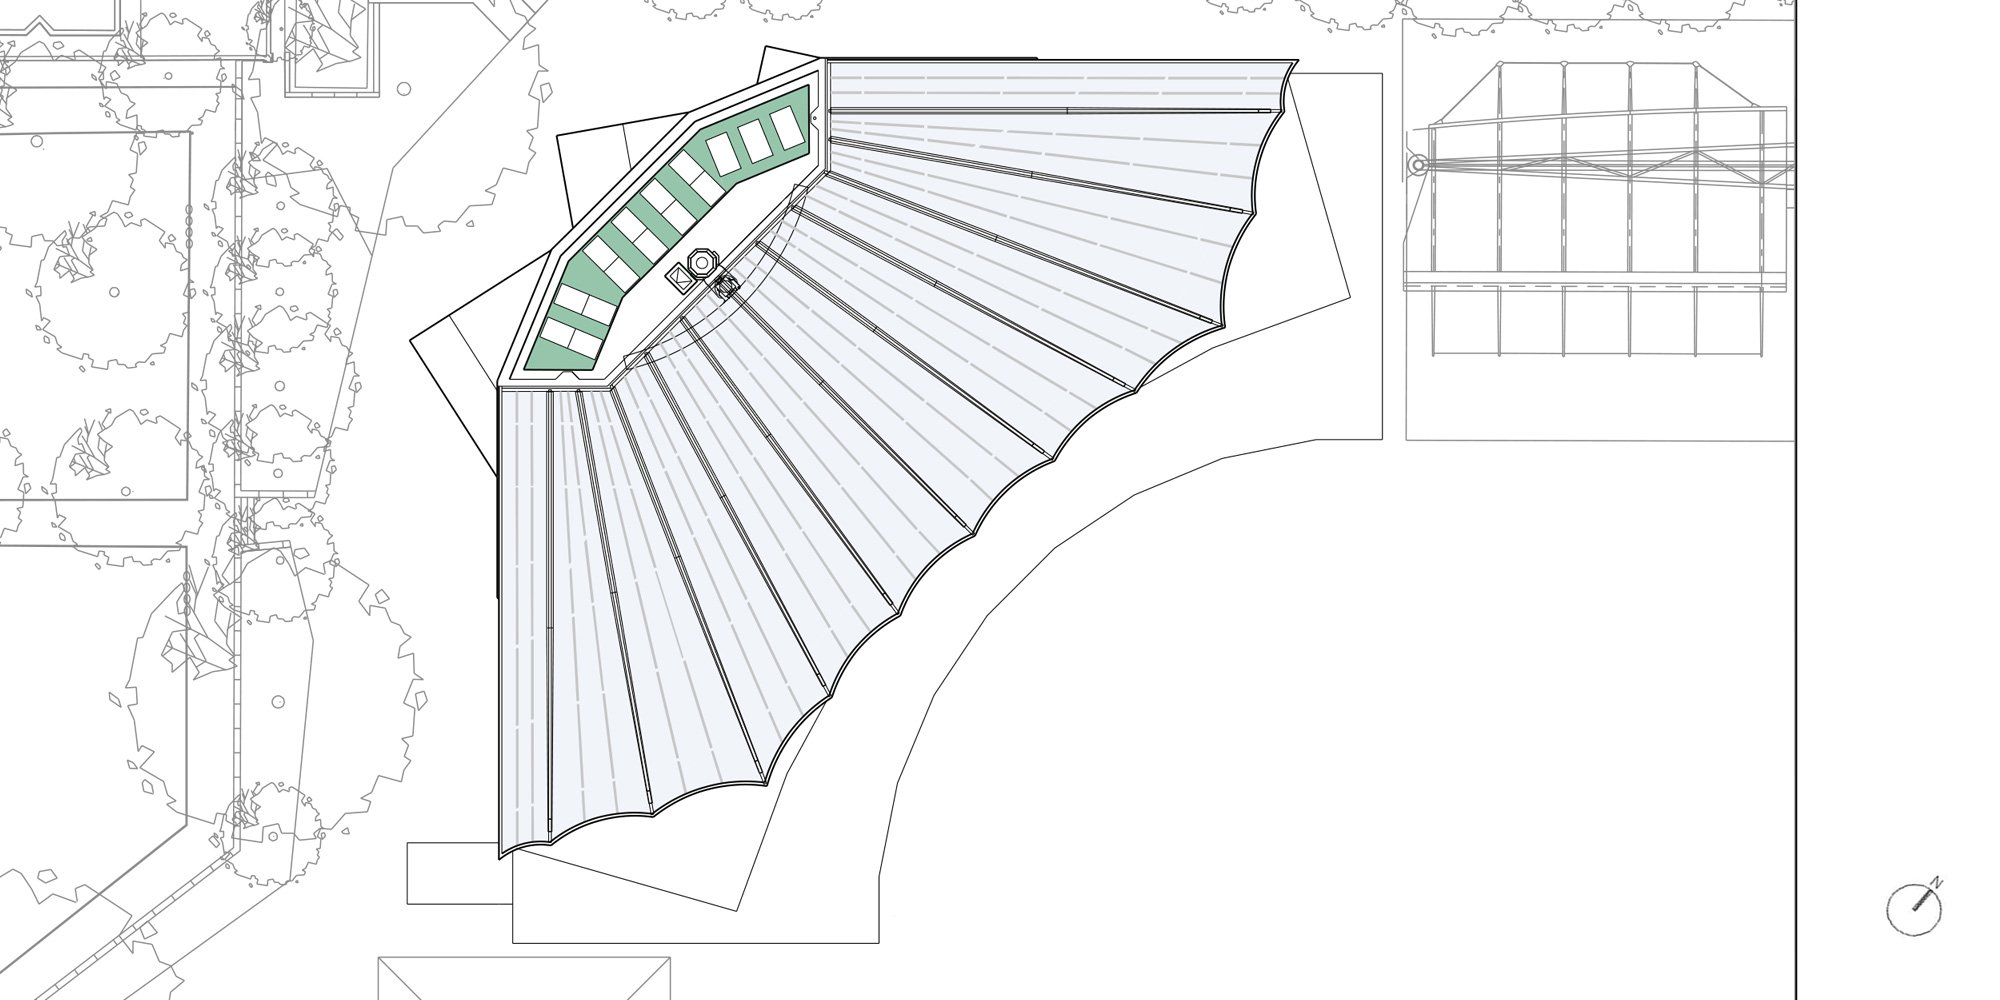 Roof Plan © Populous